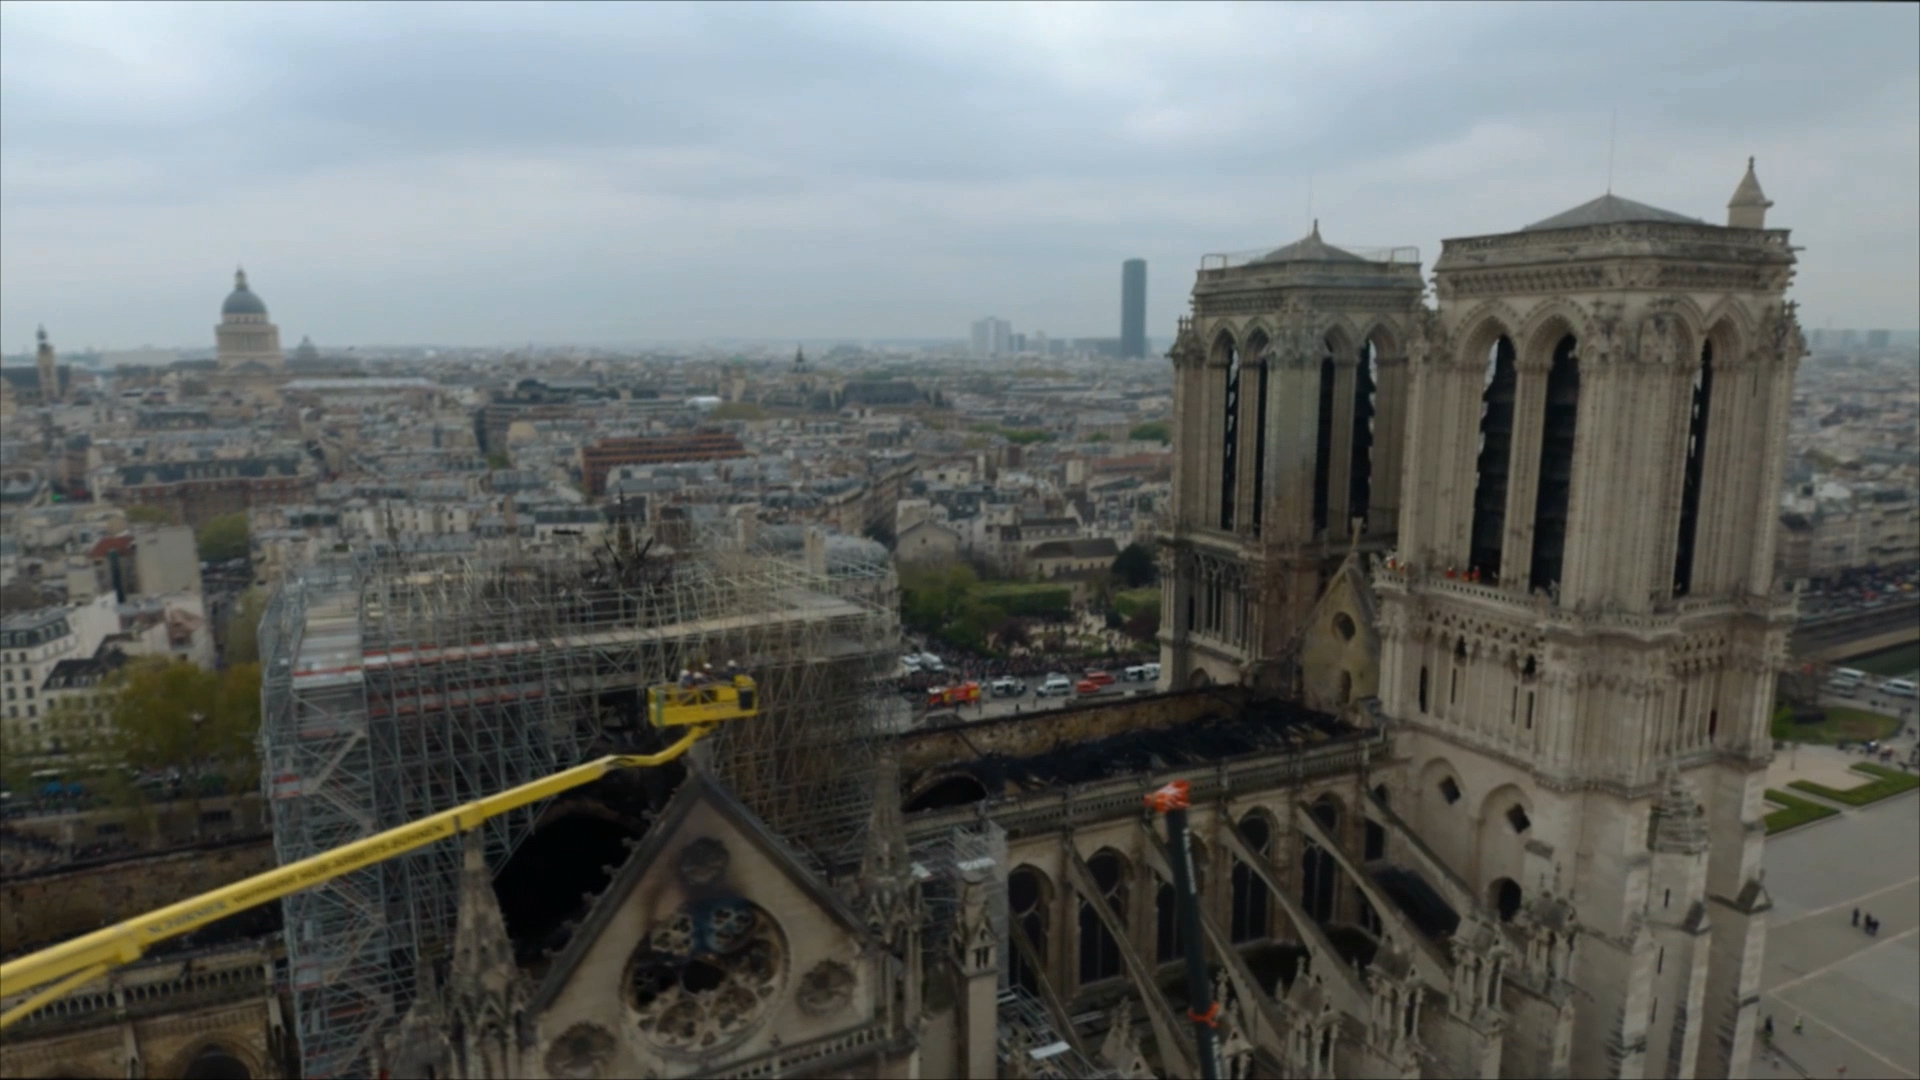 Notre Dame fire: New images show scale of destruction as experts eye iconic building's future